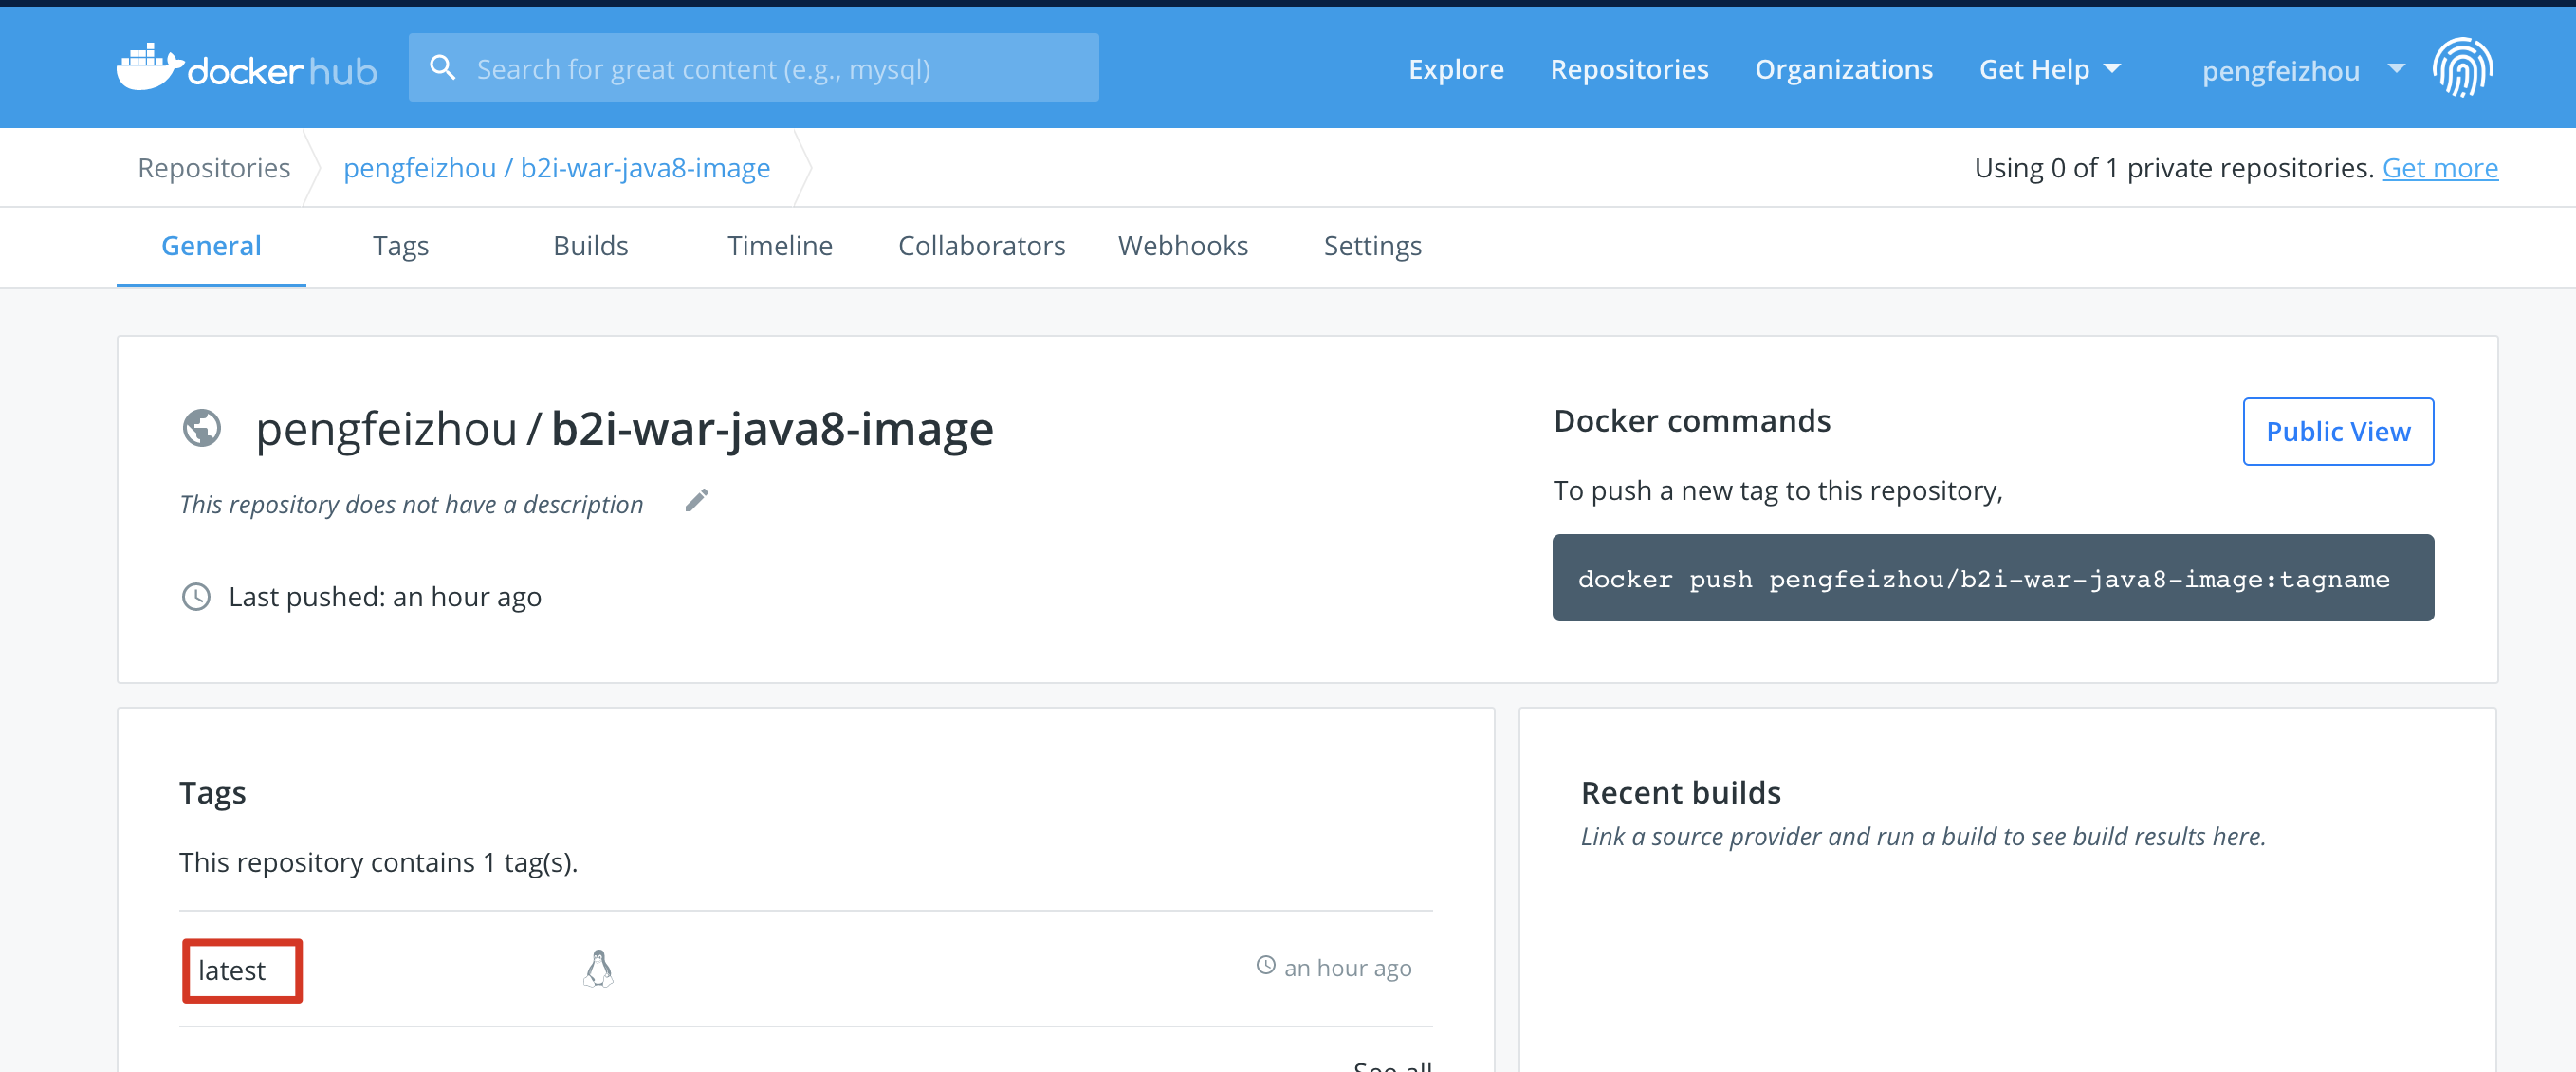 Image in DockerHub